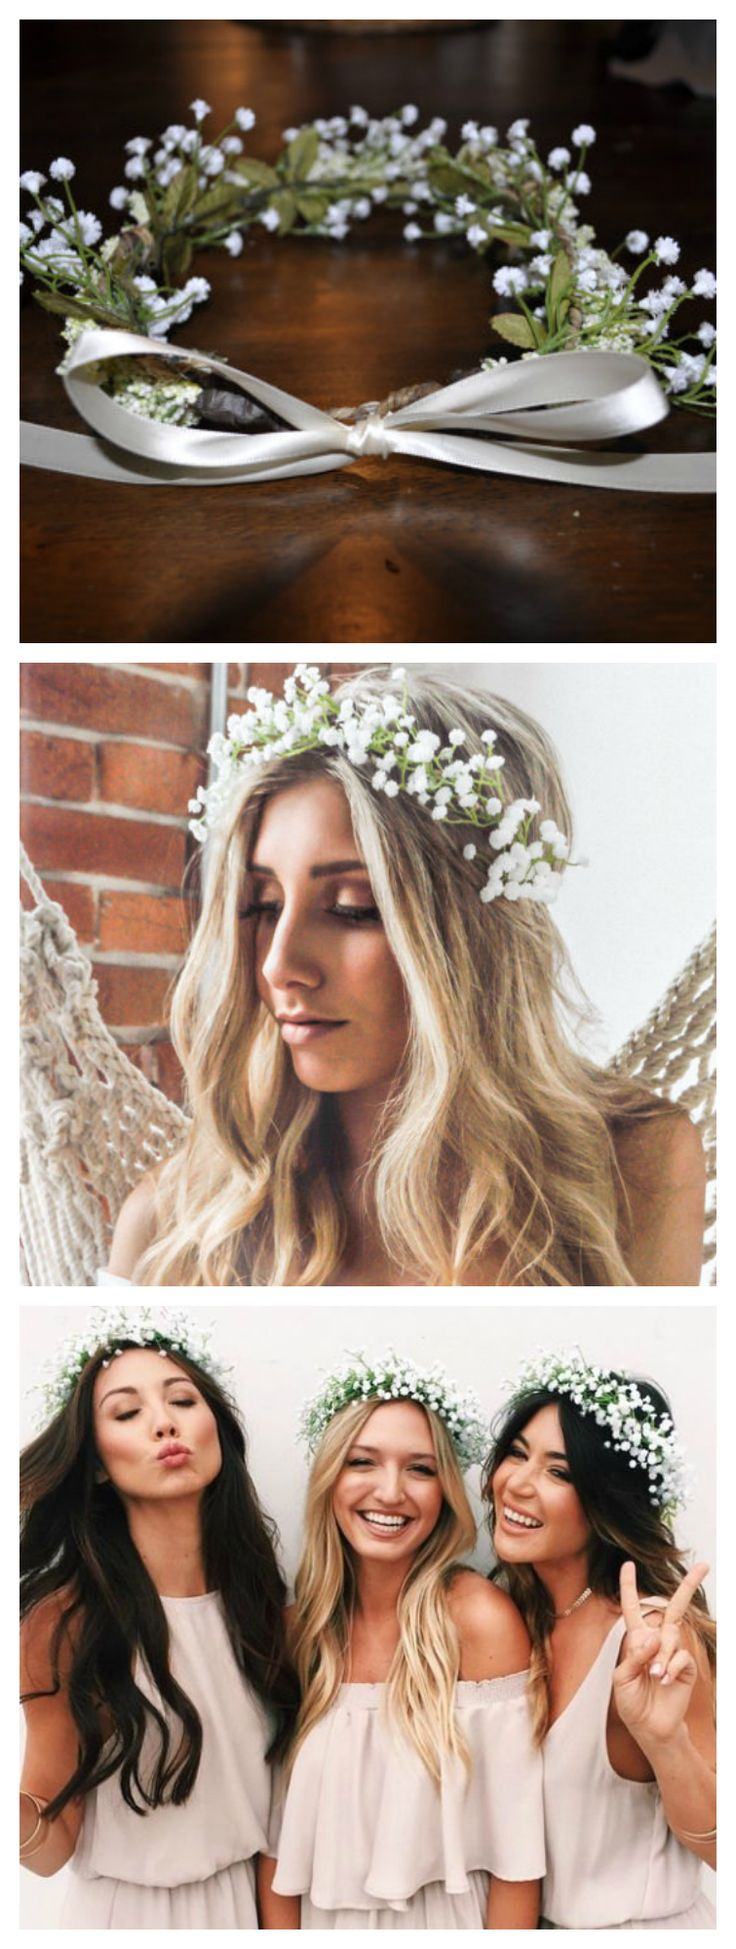 Artificial Babys Breath Flower Crown. Perfect for wedding or any special occasion. You can ask for custom order as well. We can make it for flower girls or baby.